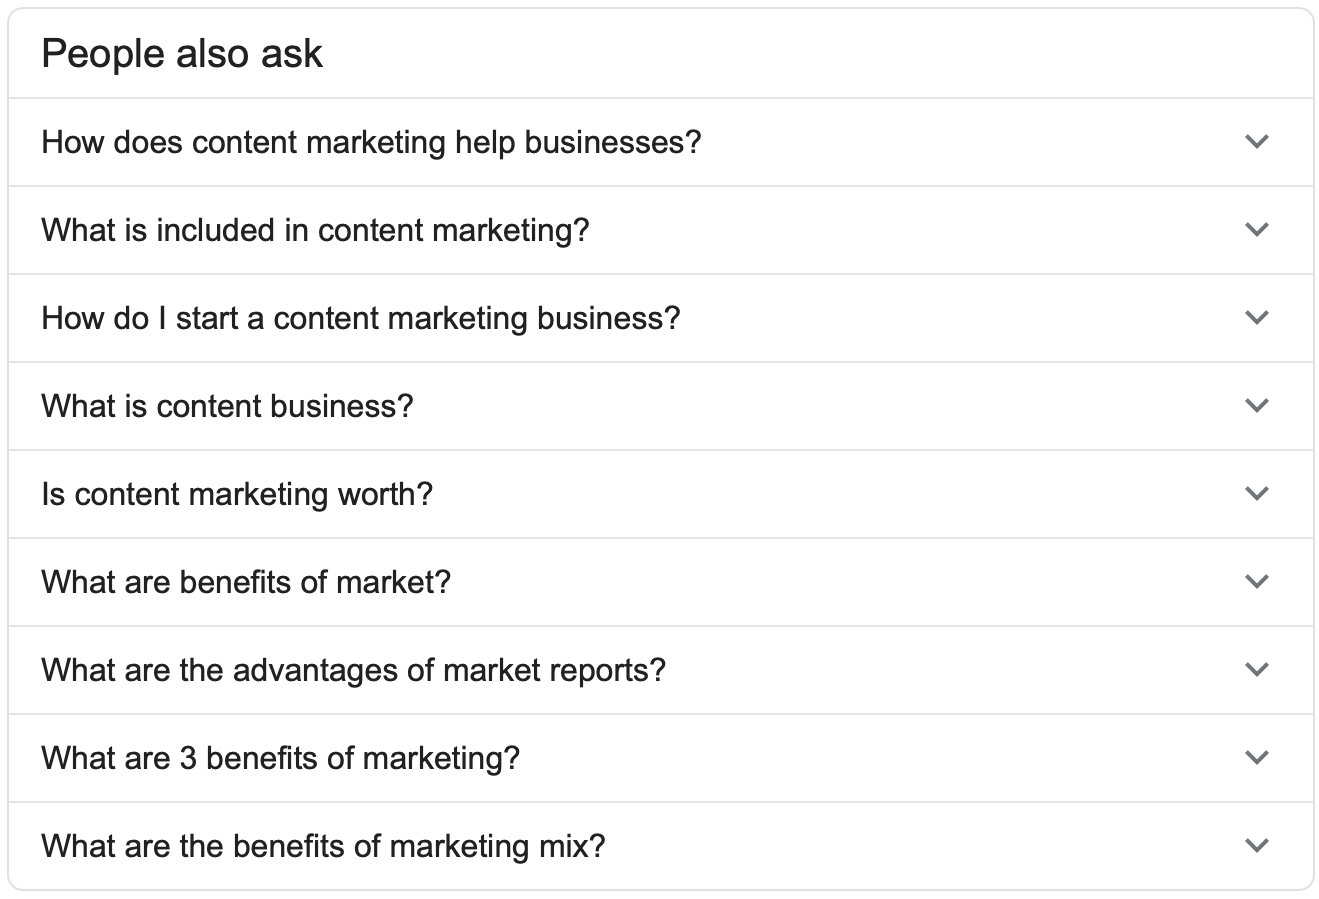 Expanding Google's People Also Ask by clicking questions